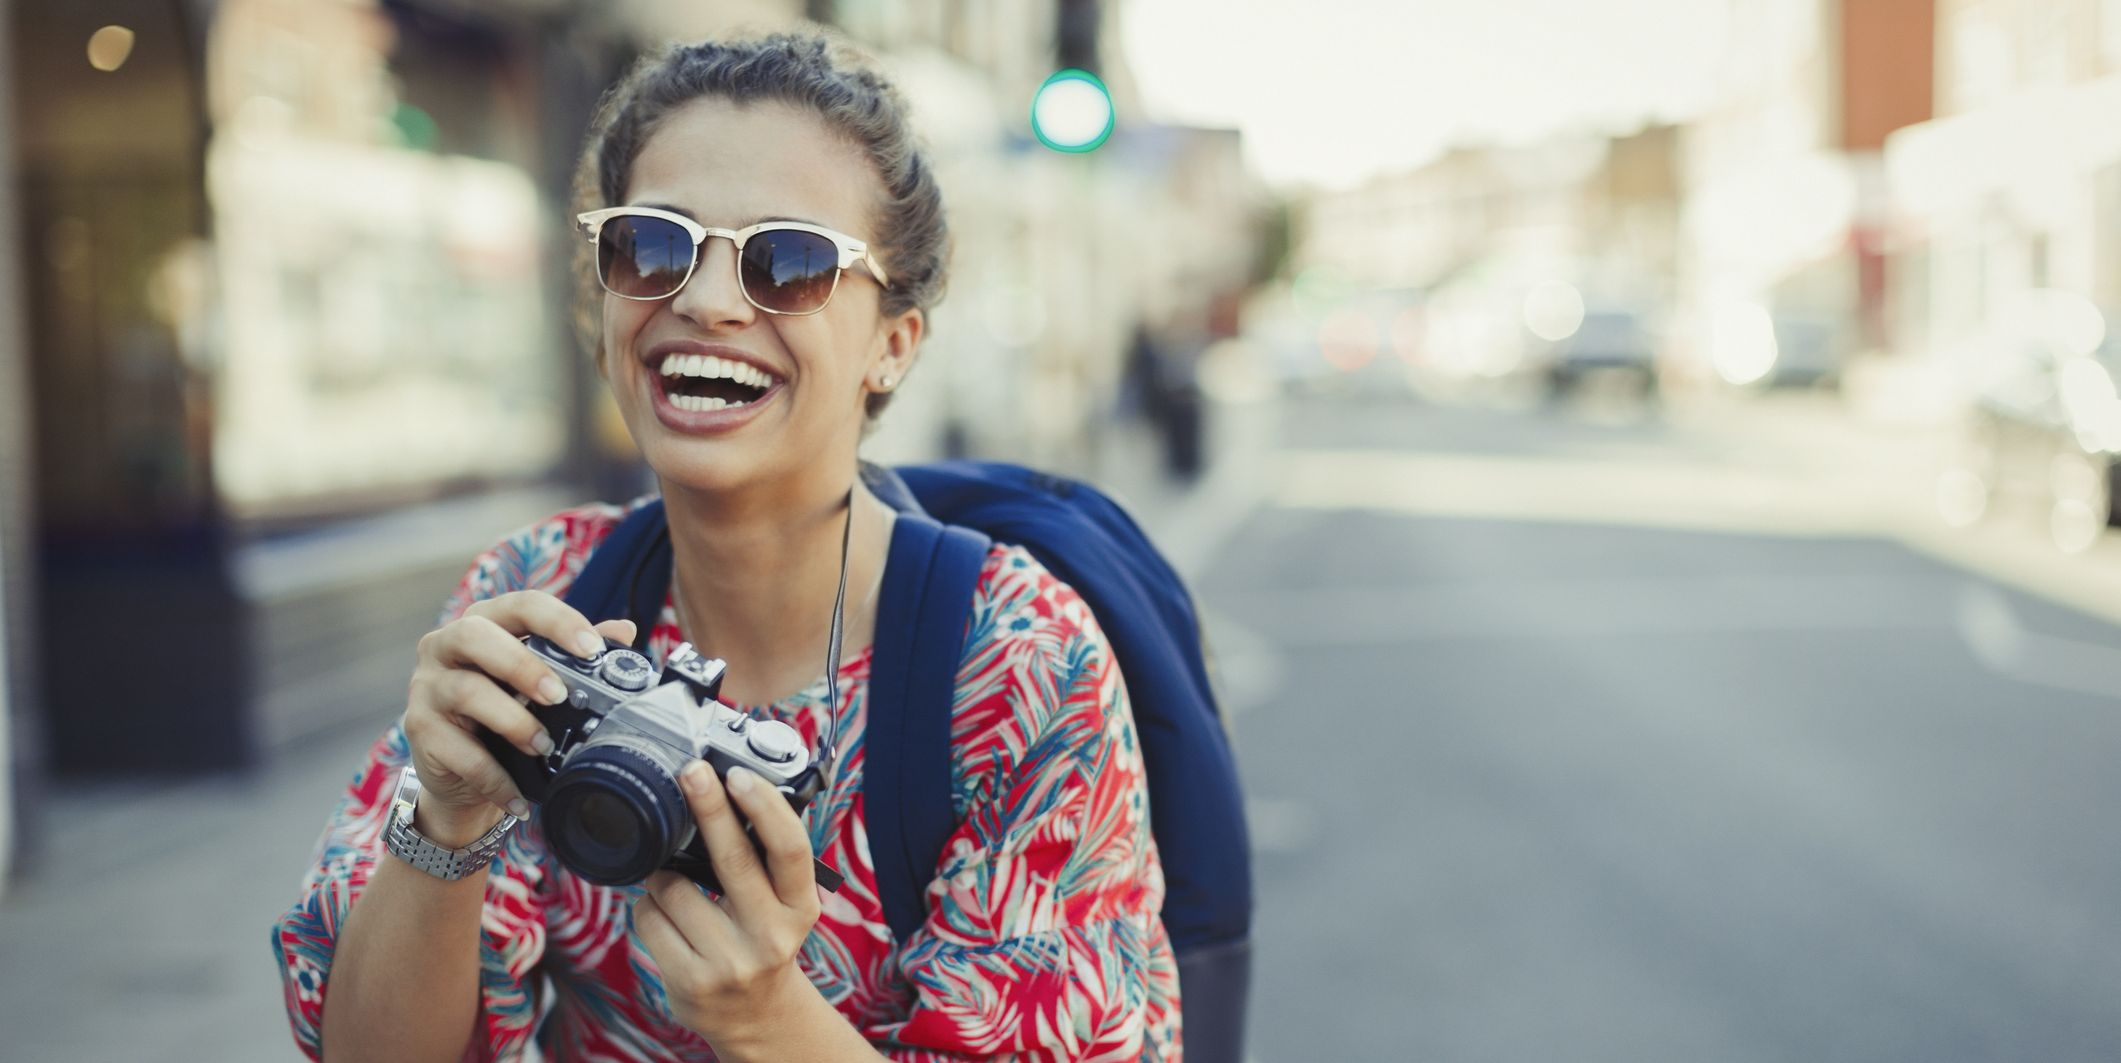 Portrait laughing, enthusiastic young female tourist in sunglasses photographing with camera on urban street